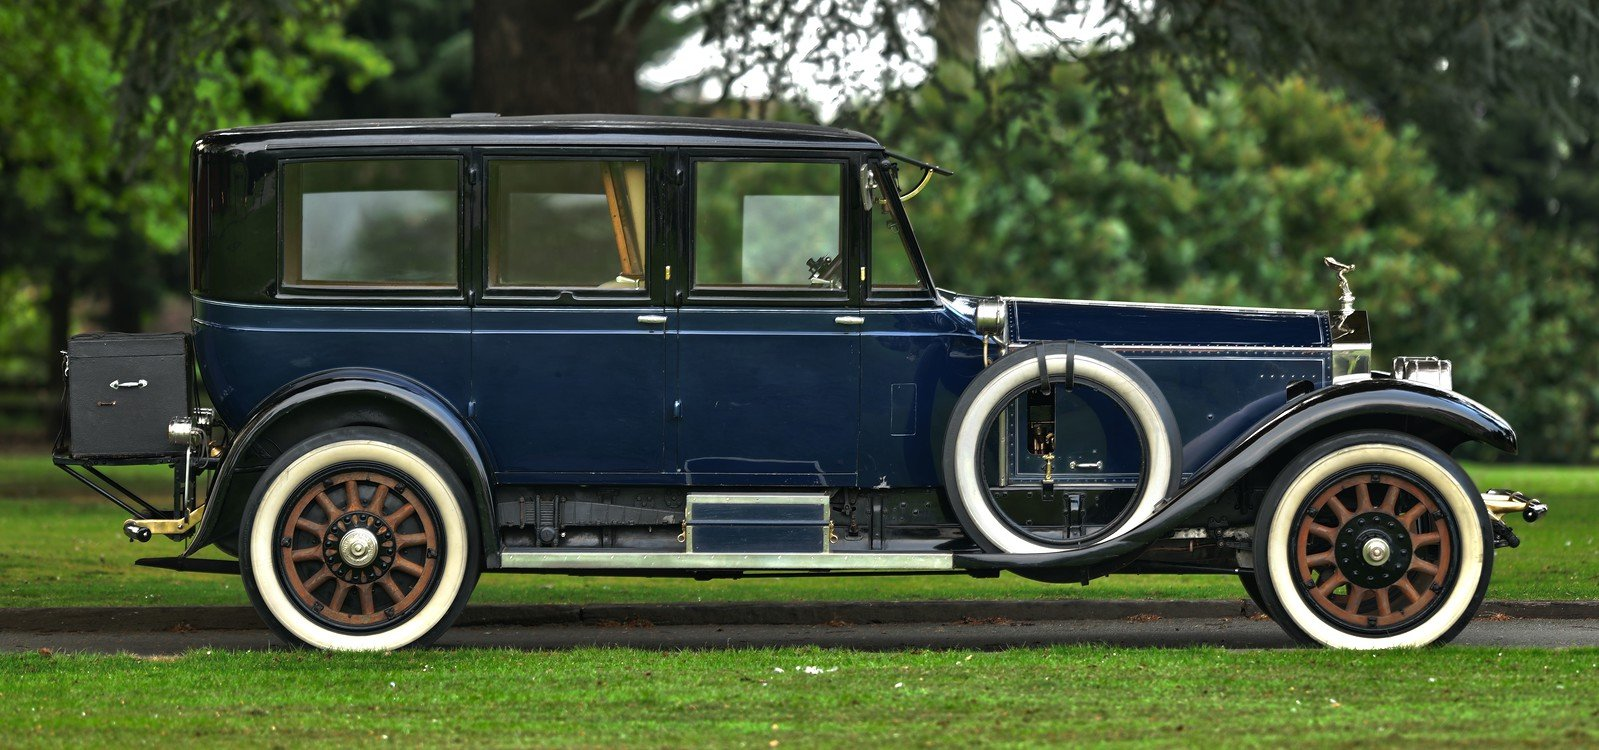 1921 Rolls Royce Silver Ghost Pickwick Limousine RHD For Sale (picture 3 of 6)